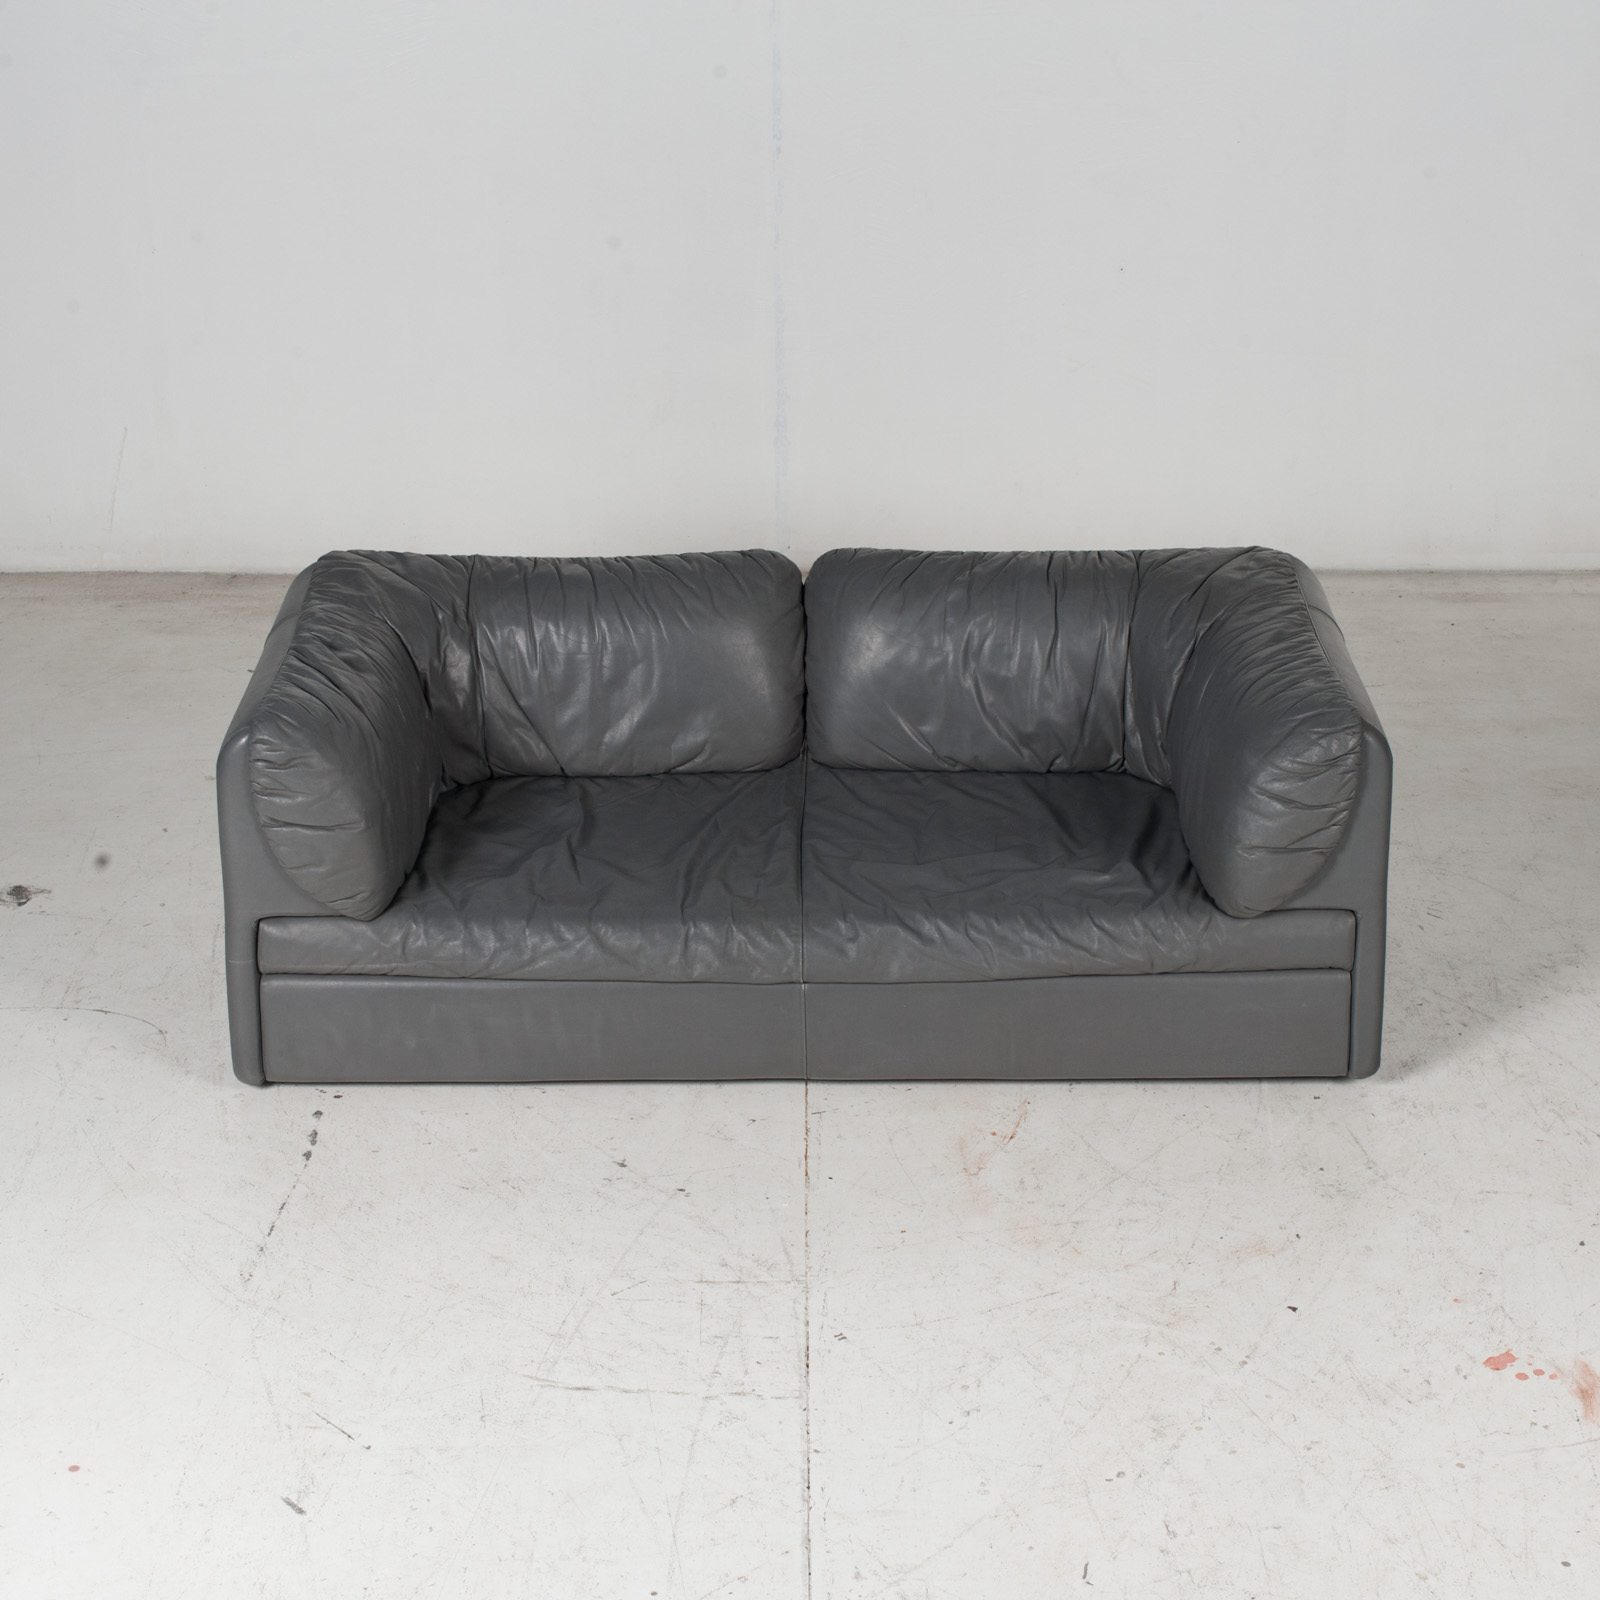 Model Pacific 2.5 Seat Sofa By Cini Boeri For Arflex In Grey Leather, 1980s, Italy 3